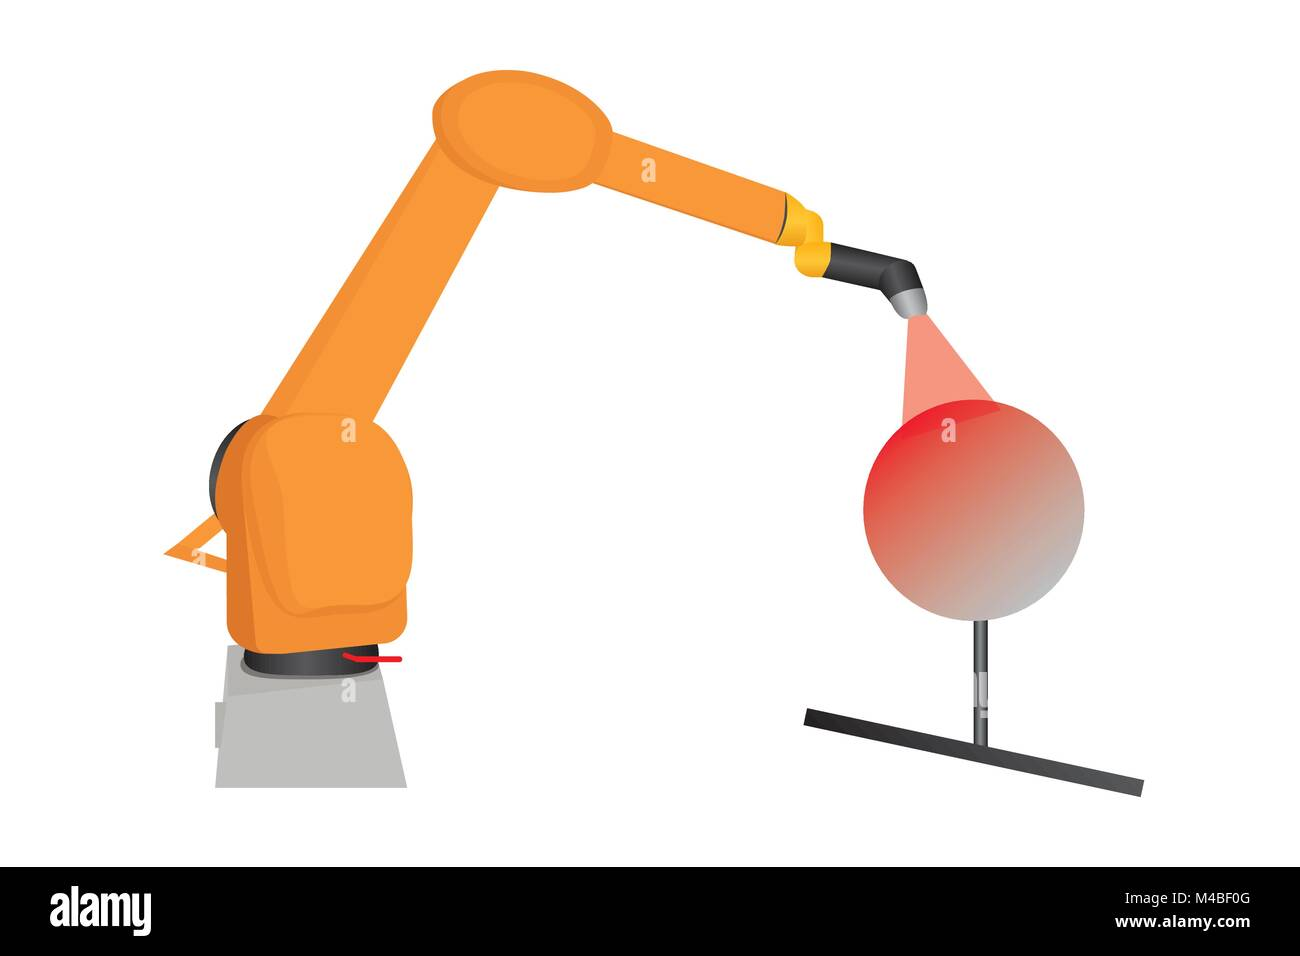 Illustration of industrial automated paint robot, vector of robot lacquering something/ robots leading to mass unemployment/ - Stock Vector